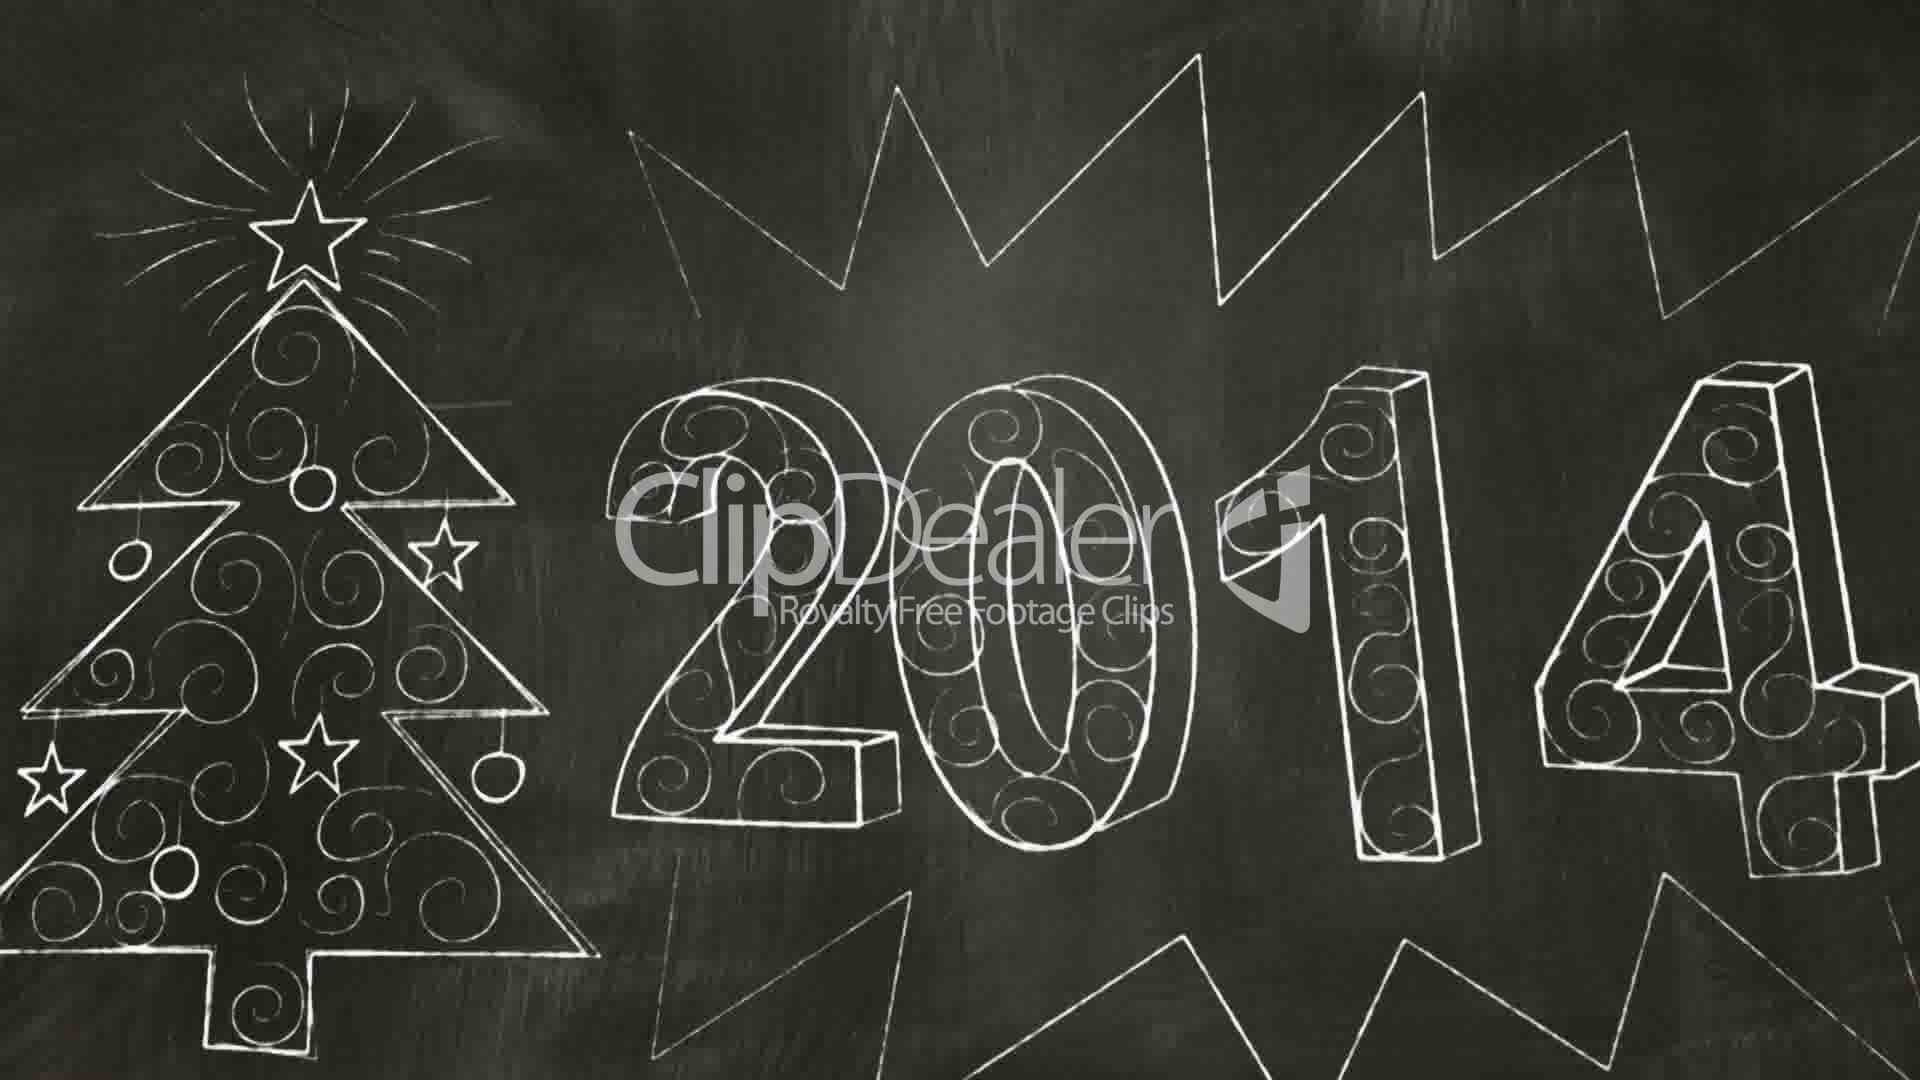 Drawing 2014 New Year Greetings On Blackboard Royalty Free Video